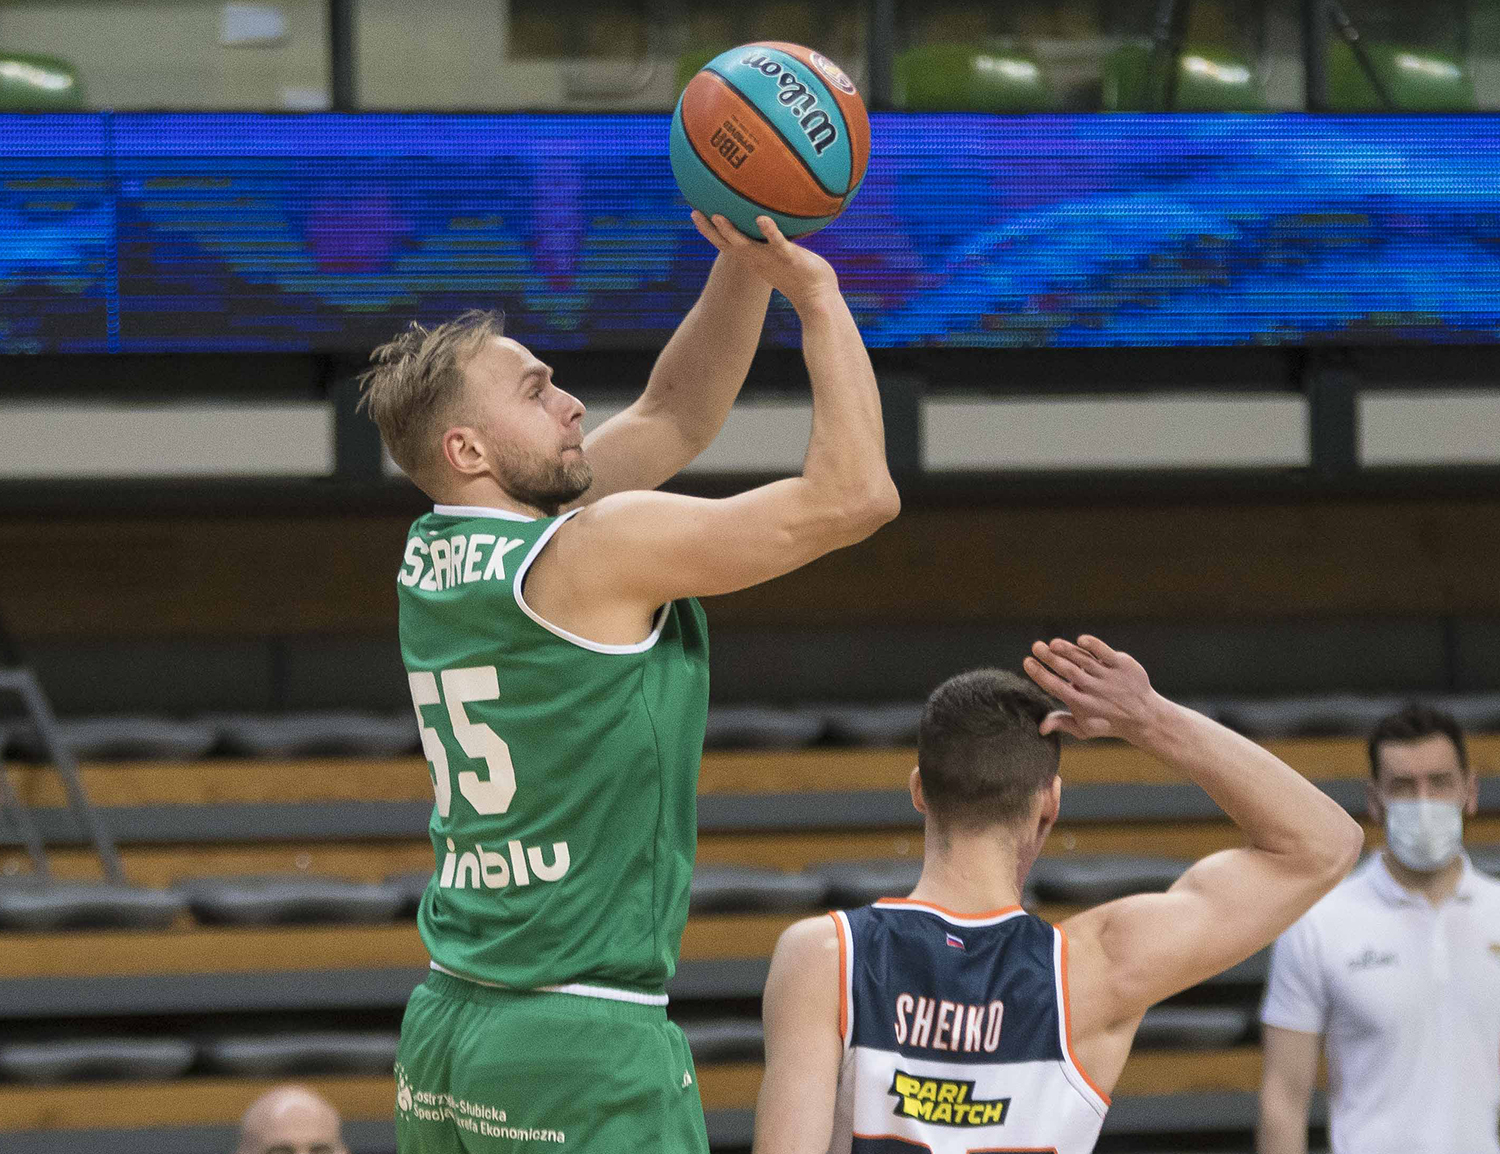 Zielona Gora come back from -15 and beat PARMA